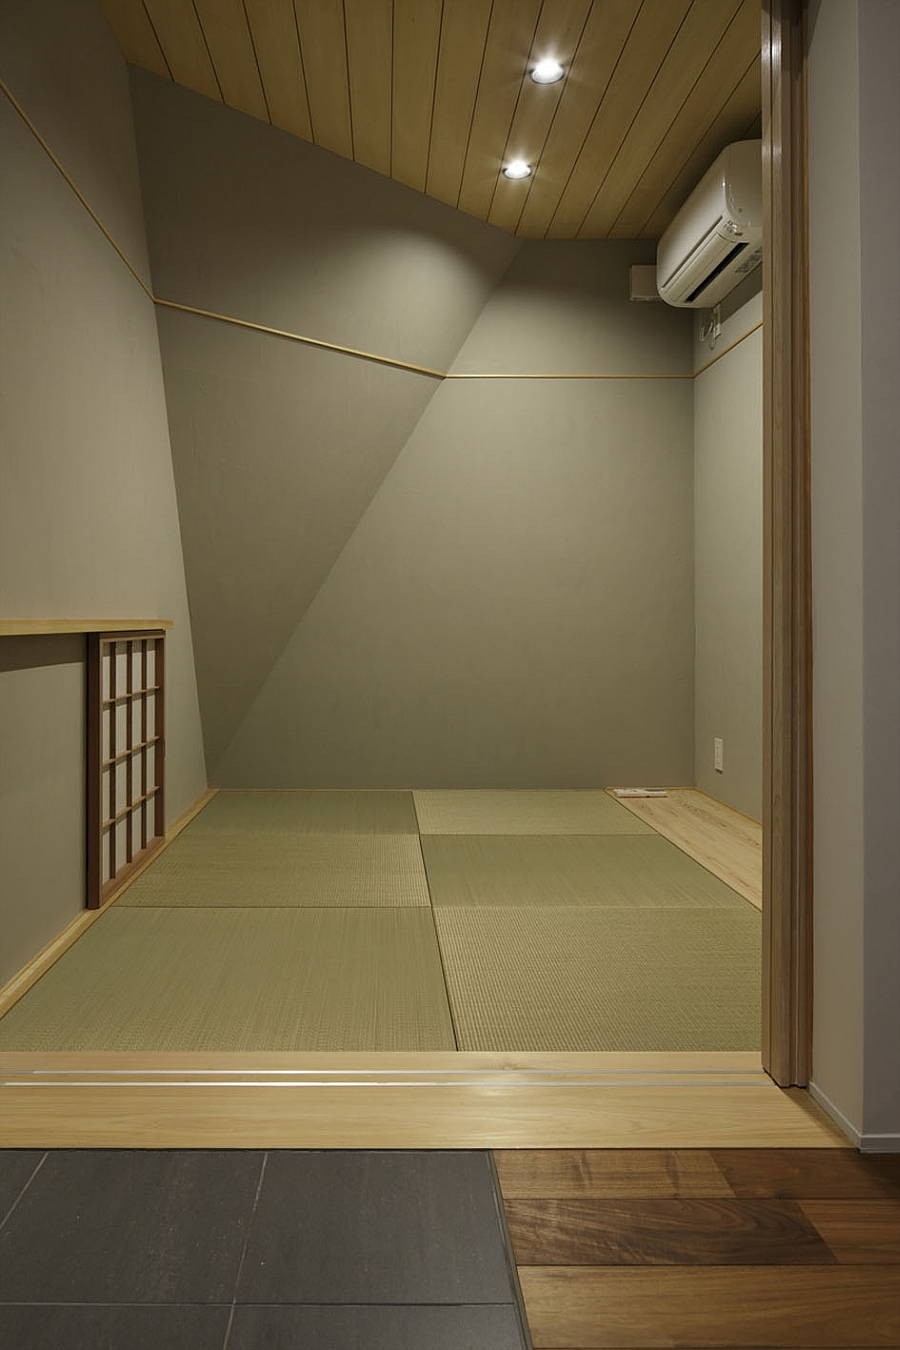 Minimal and elegant inetriors of the Japanese house with shoji screens